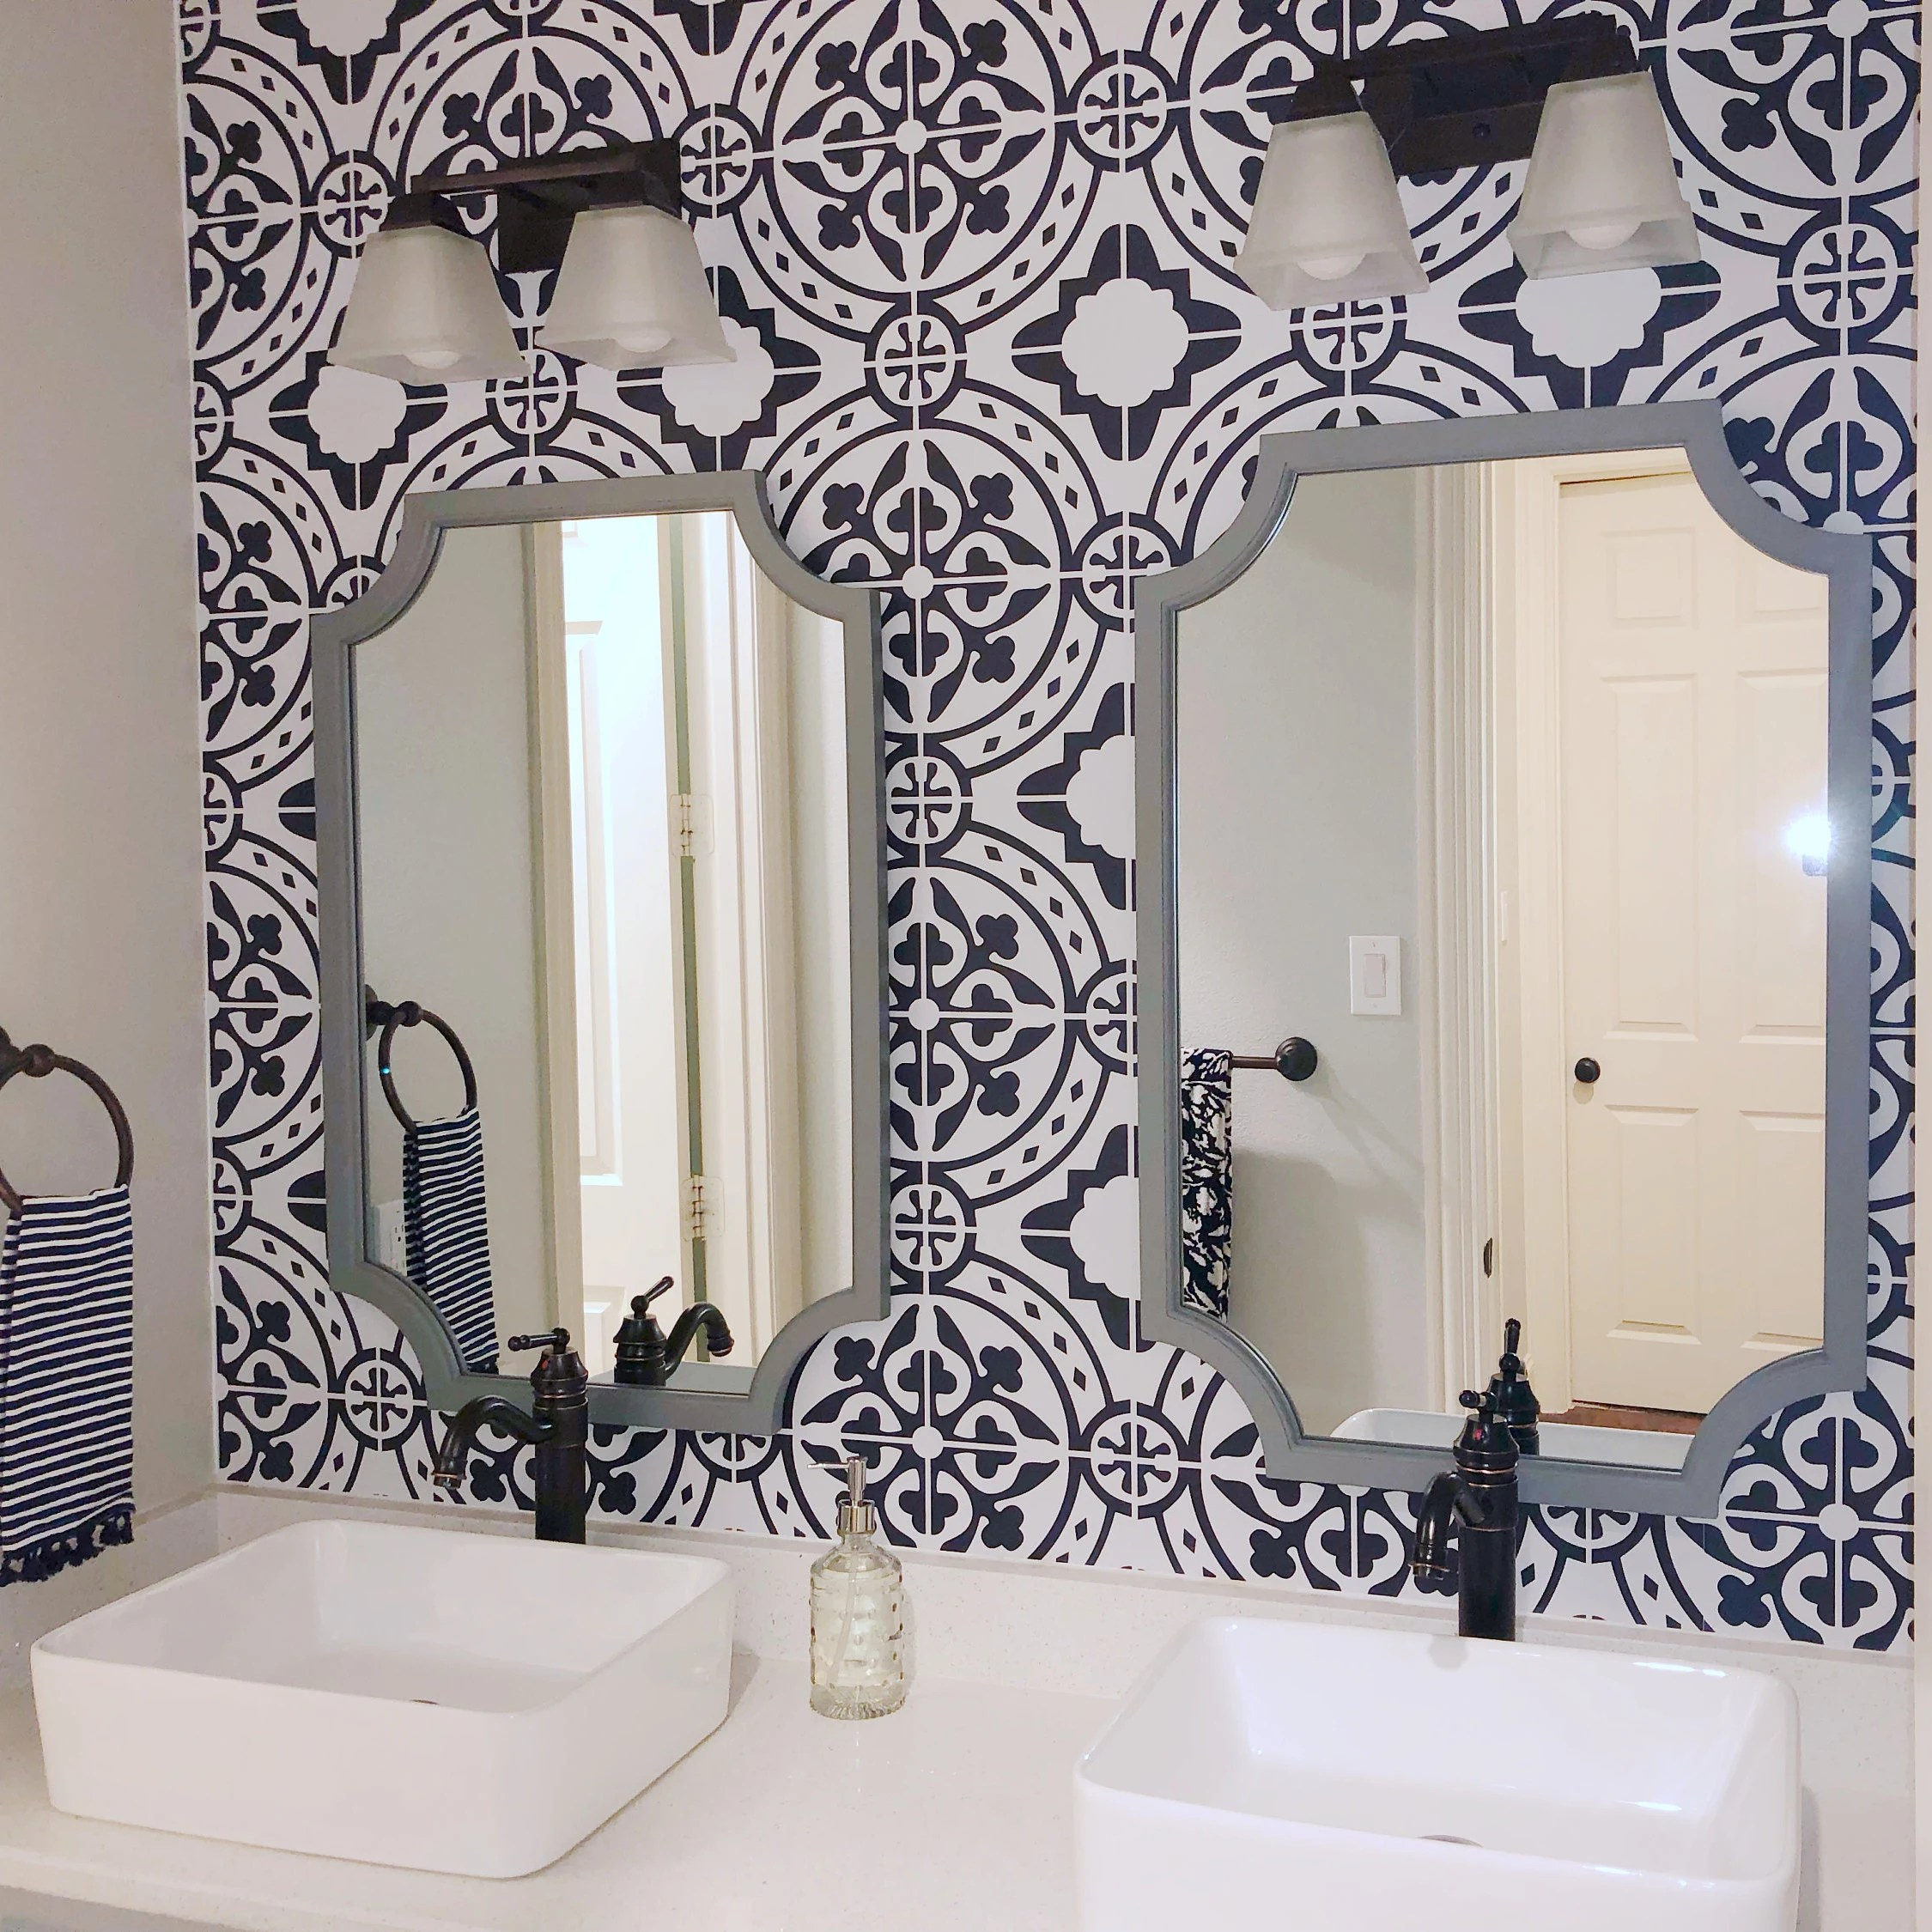 moroccan tile peel and stick wallpaper removable wallpaper etsy